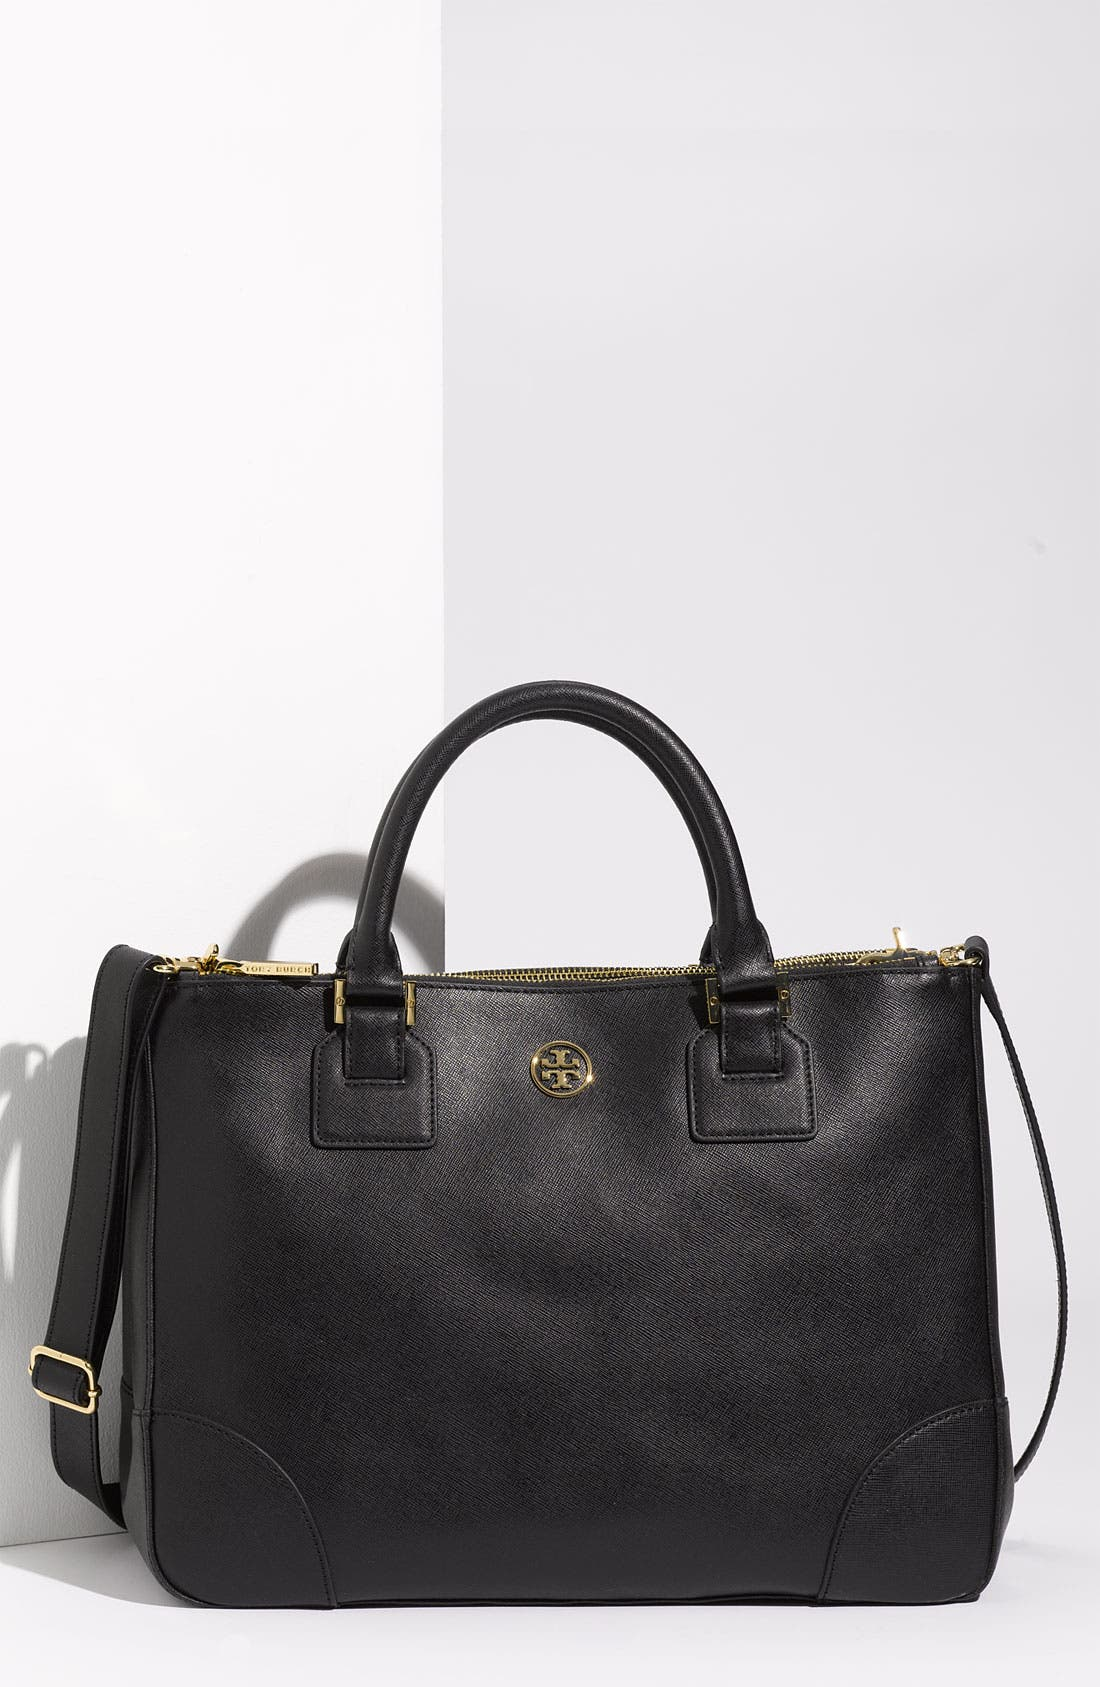 Main Image - Tory Burch 'Robinson' Double Zip Tote